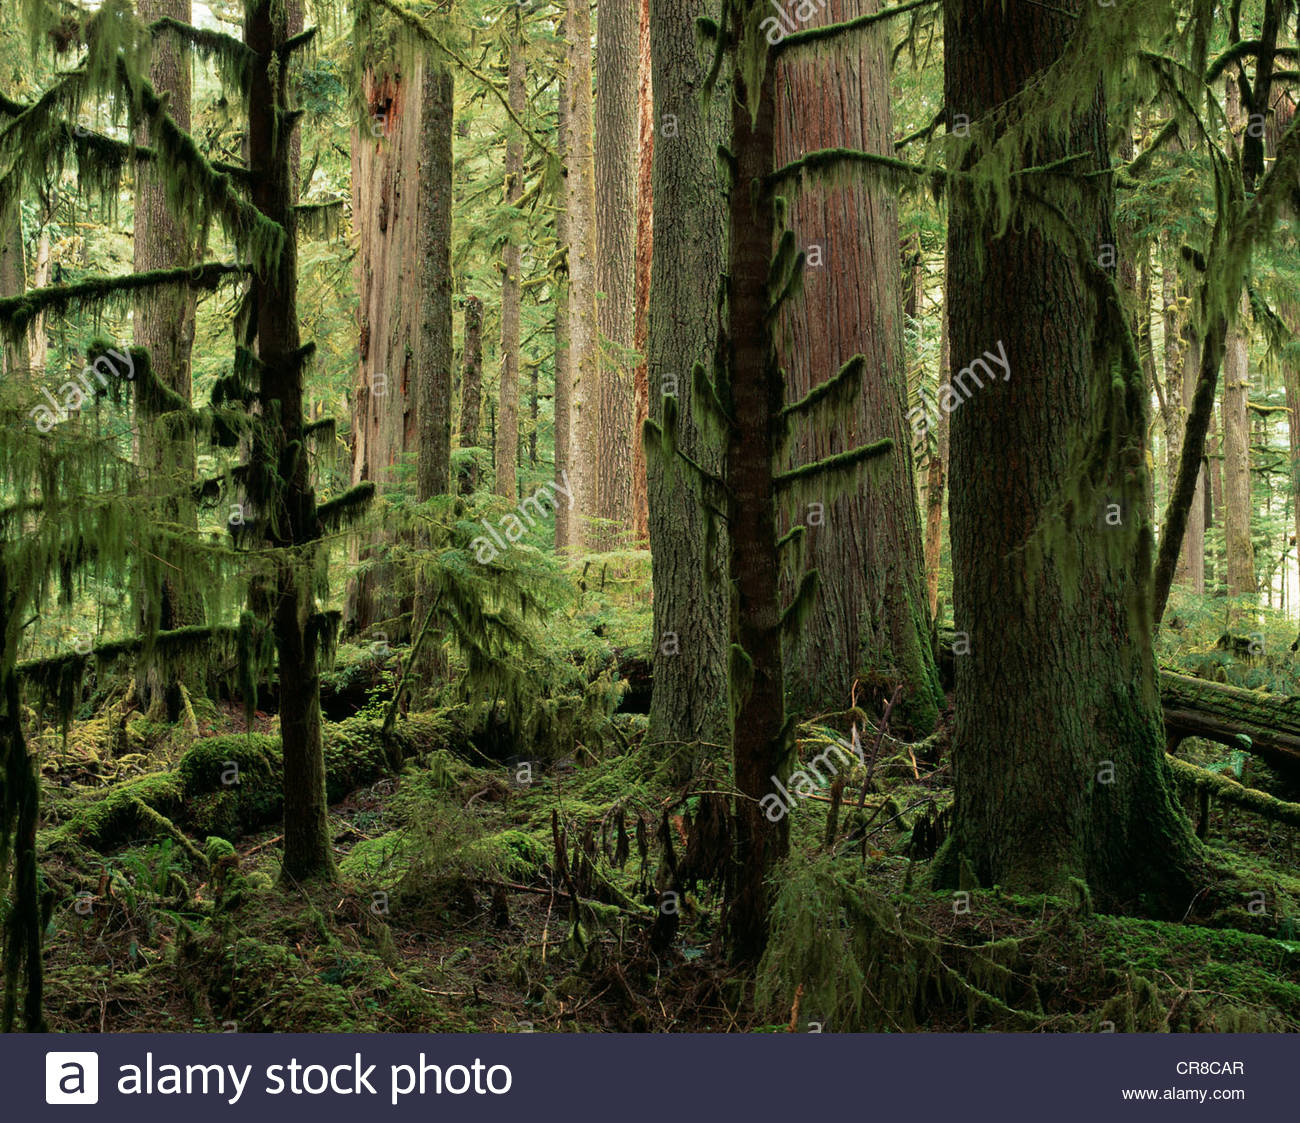 Olympic National Park, Washington - Stock Image